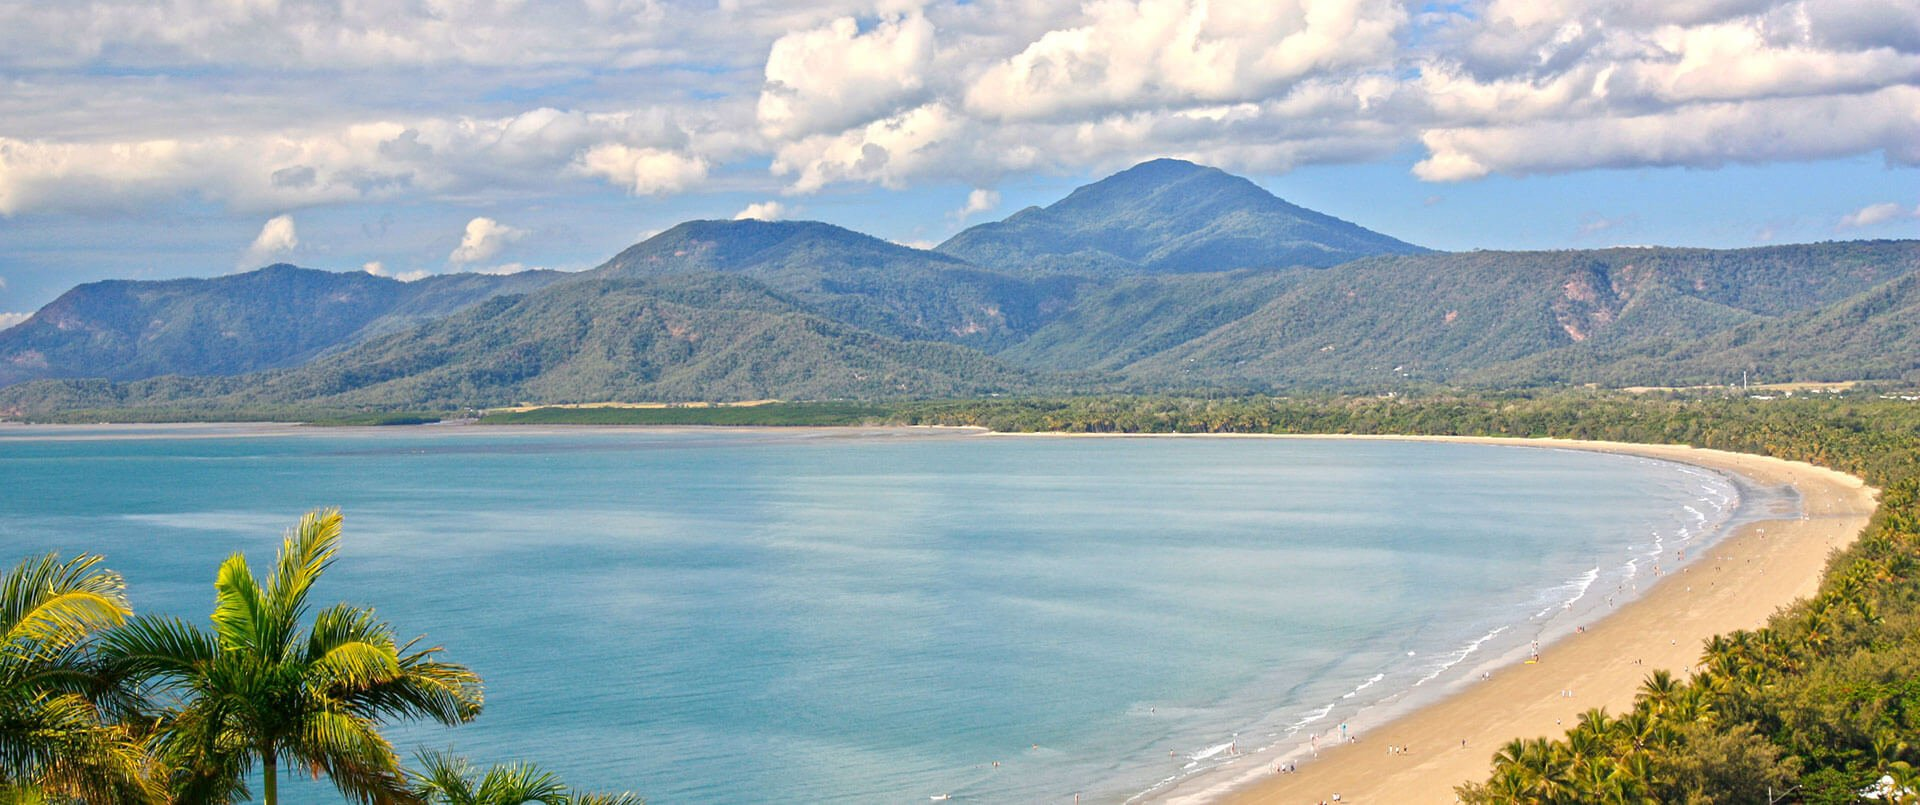 8 Day Port Douglas, Rainforest & Reef Experience